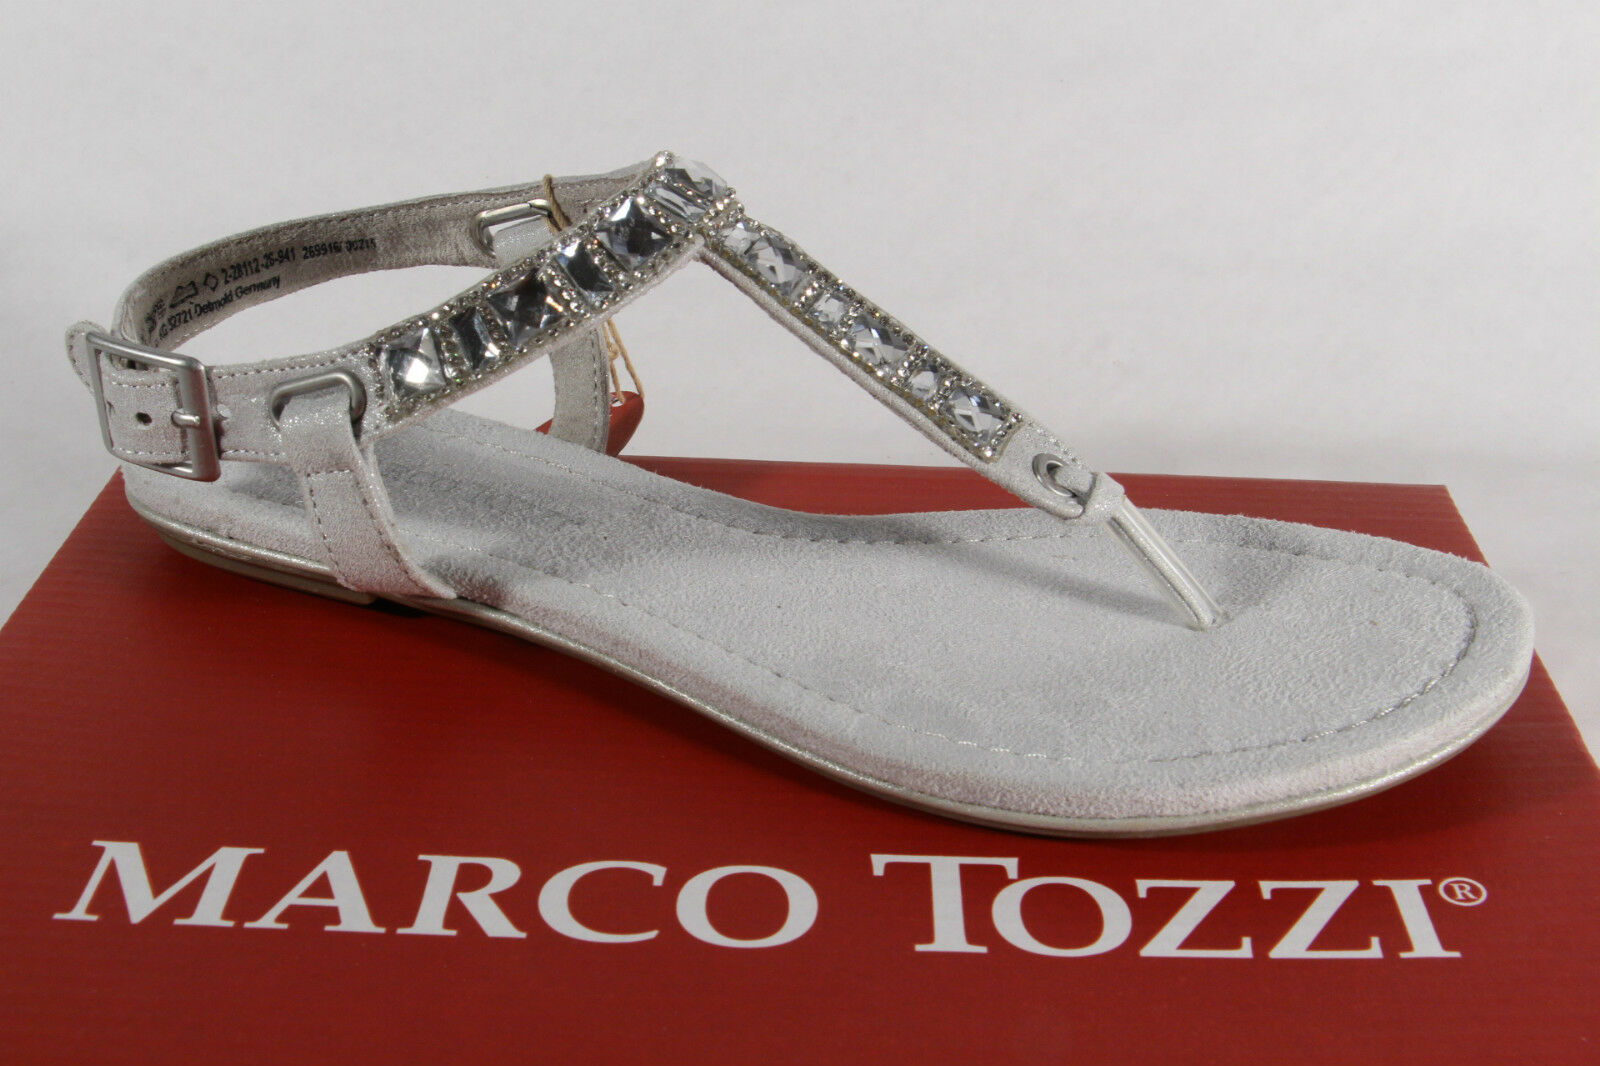 Marco Tozzi Thong Flip-Flops Sandals Sneakers Silver Grey New